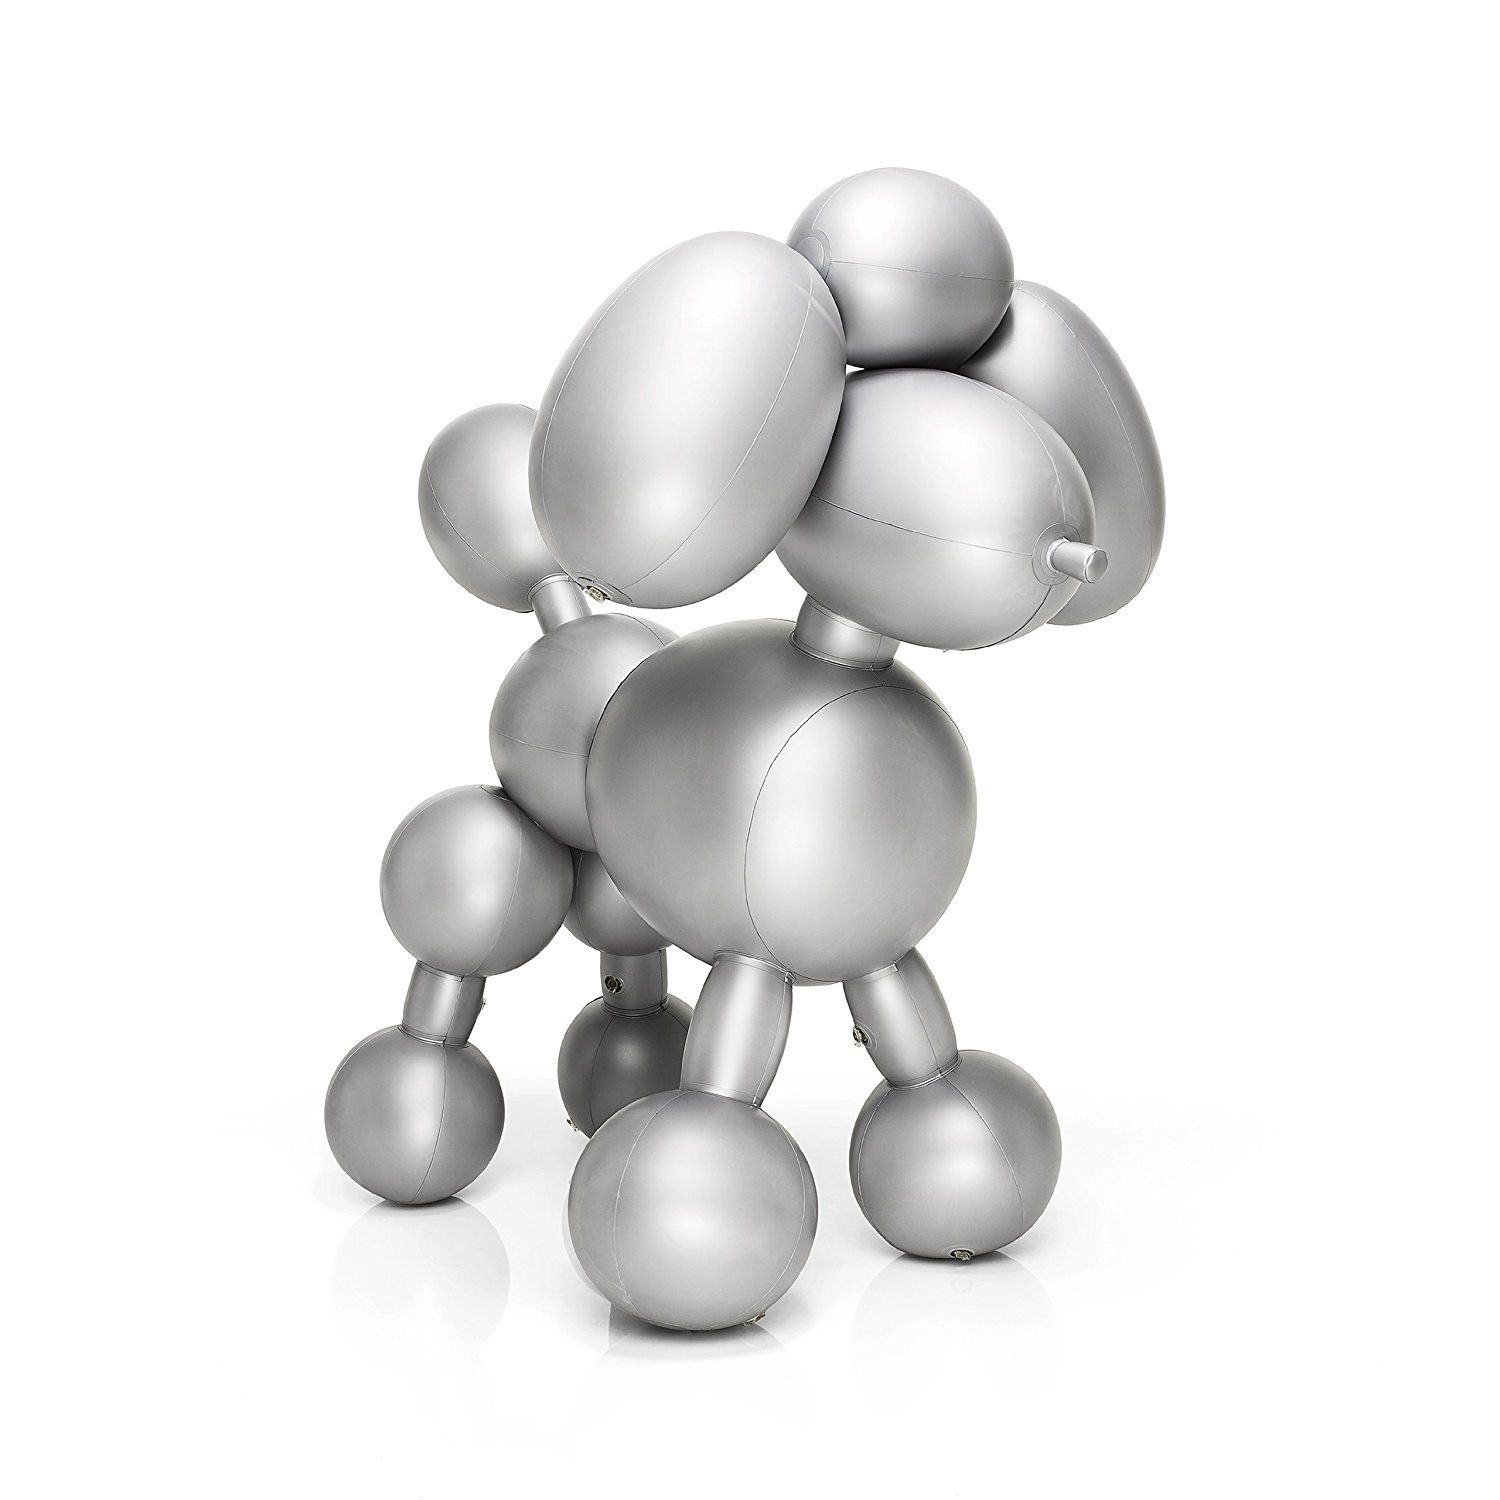 fatboy inflatable balloon poodle dolly decor, silver: home